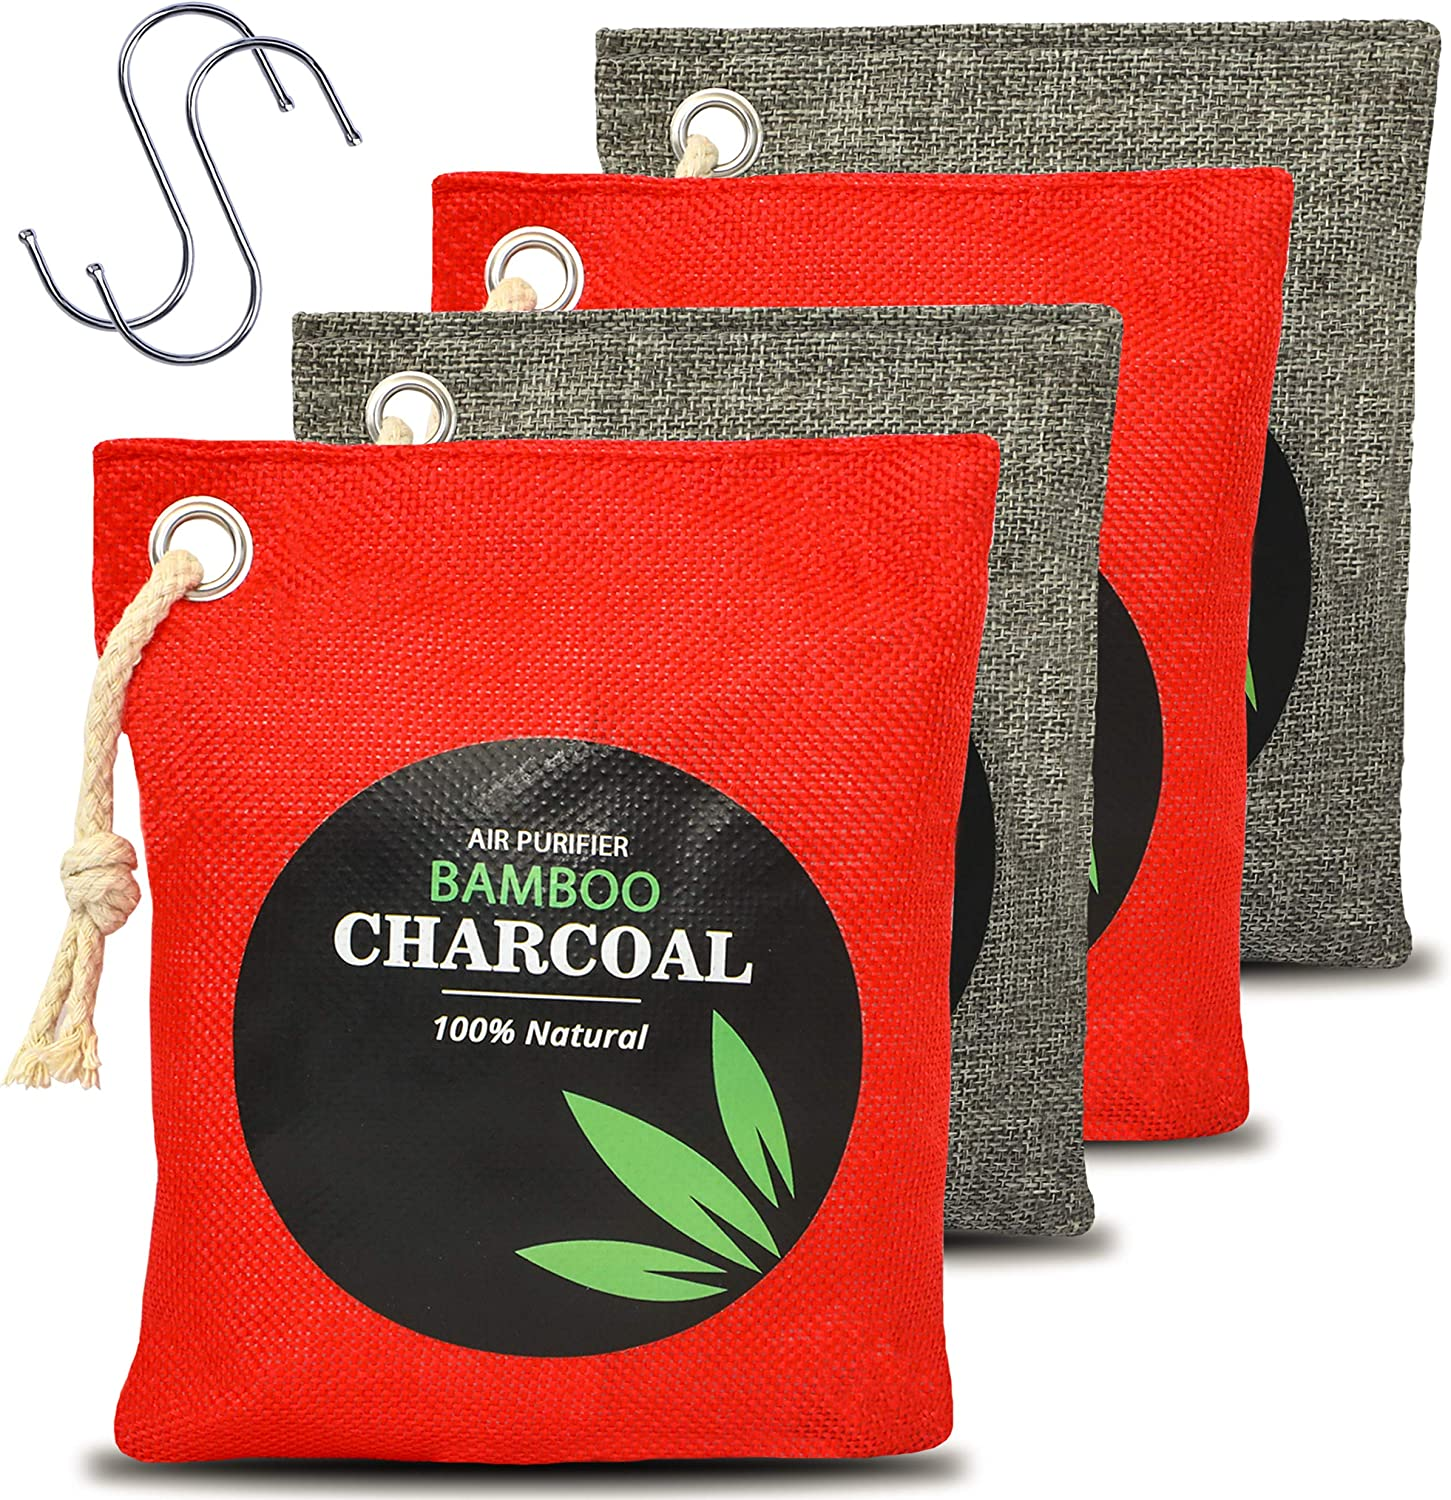 Natural Bamboo Odor Eliminator Home Air Purifying Charcoal Bags, Nature Activated Fresh Purifiers Odor Absorber Bag Pack of 4x200g